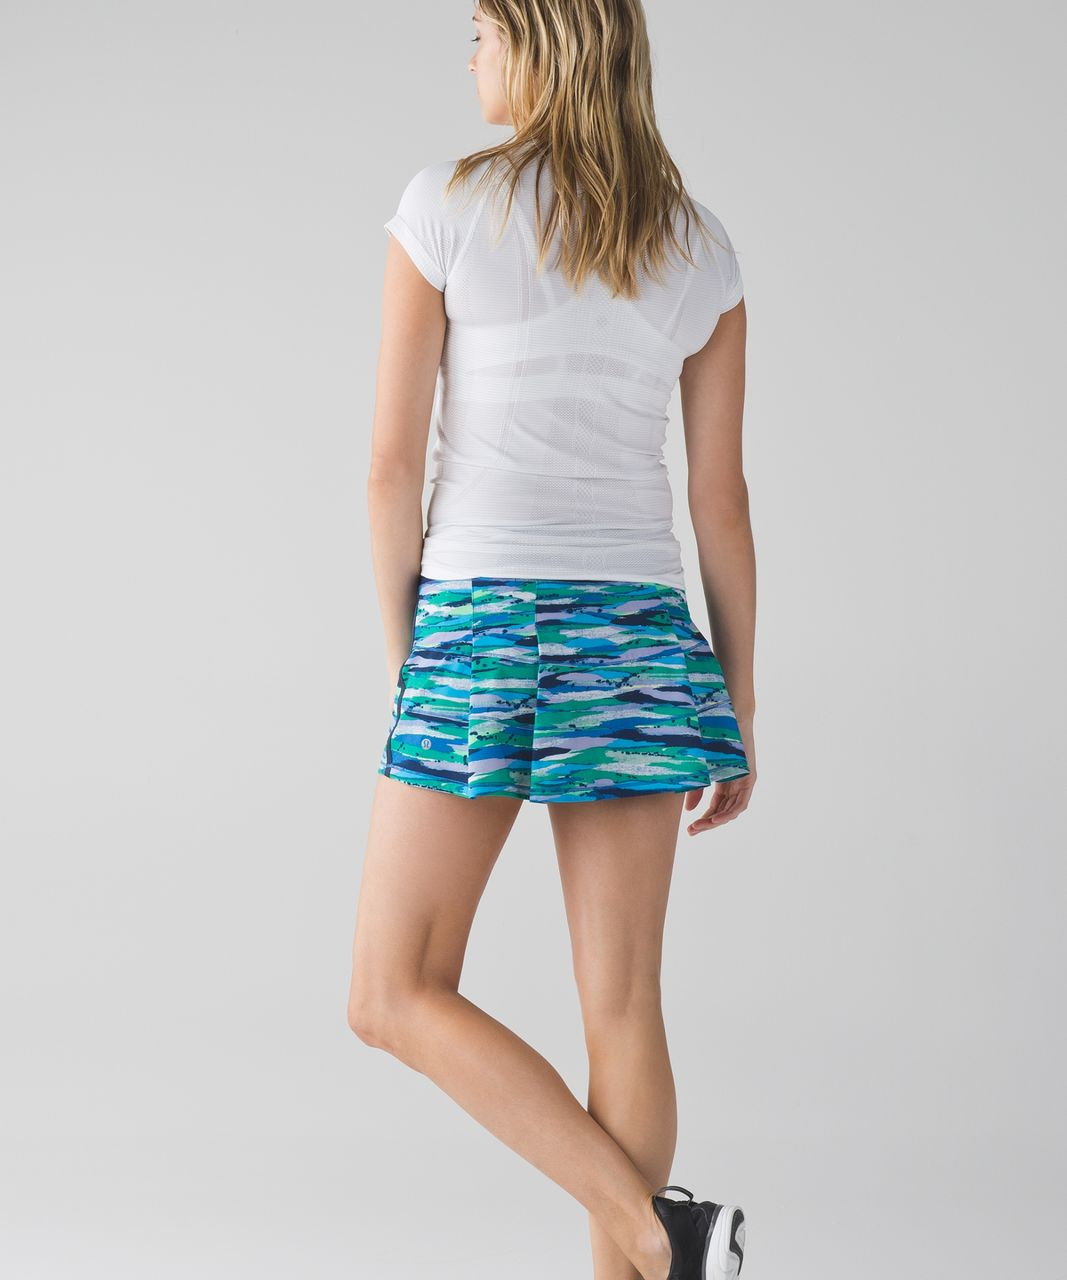 Lululemon Pace Rival Skirt II (Regular) - Seven Wonders Multi / Hero Blue